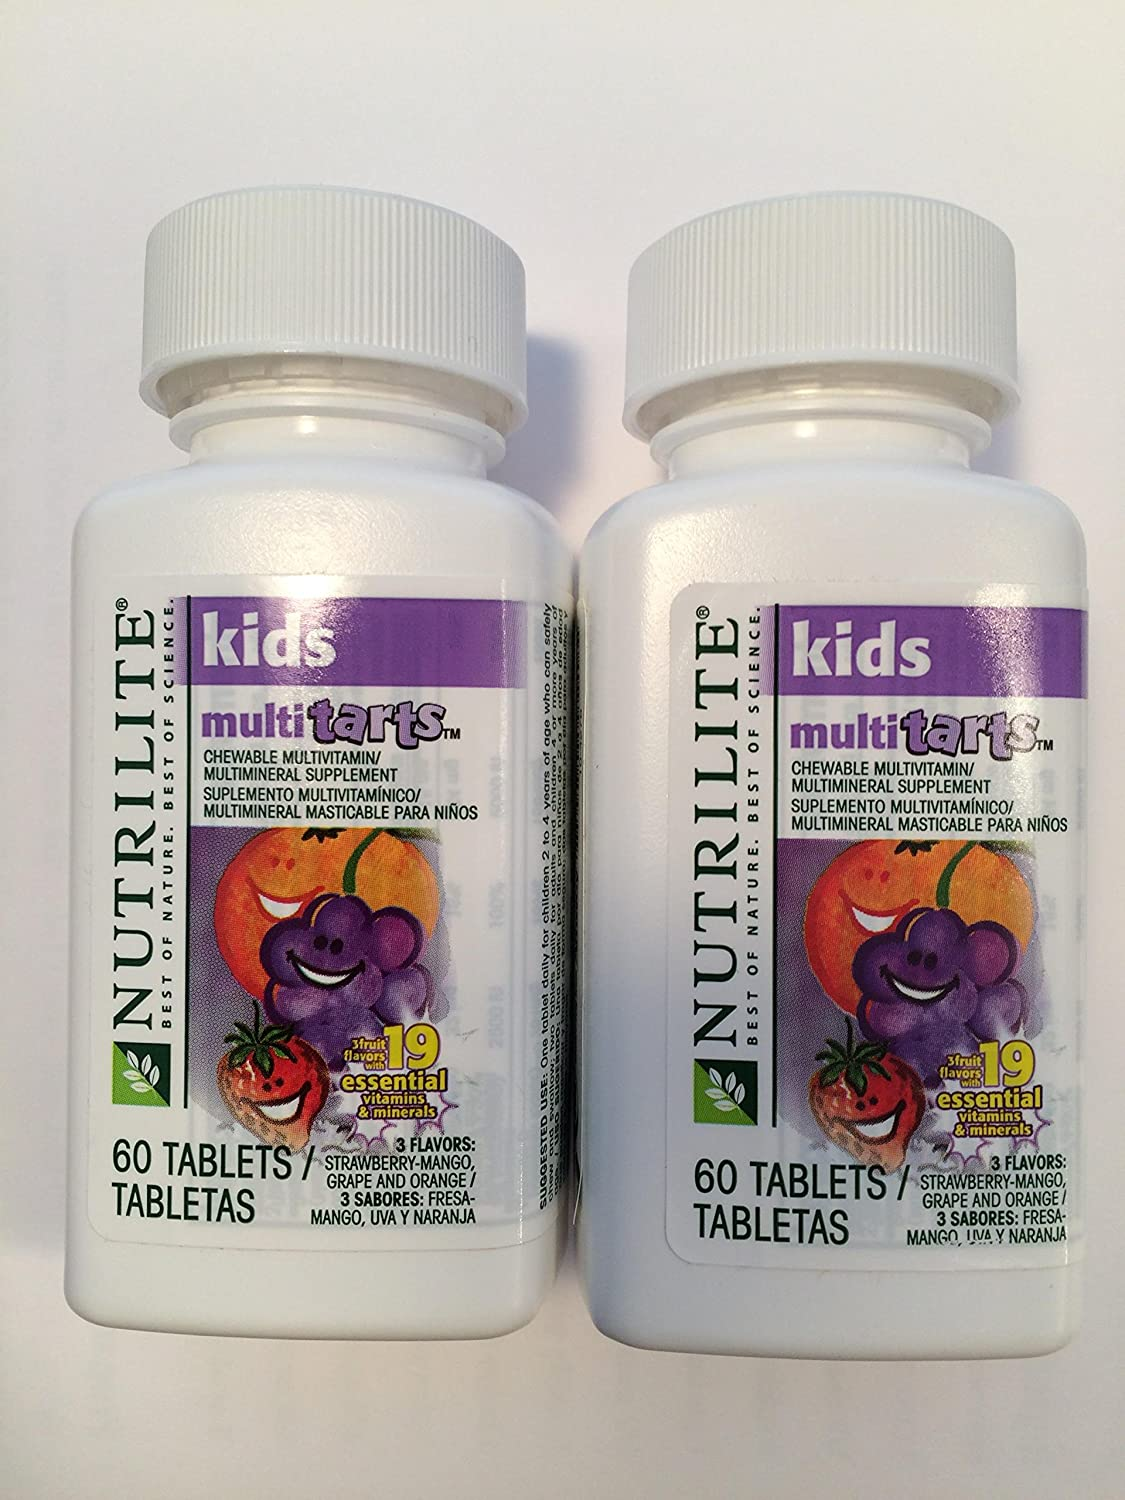 Amway Nutrilite Kids Multitarts Chewable Multivitin, 60 Tablets, Pack of 2